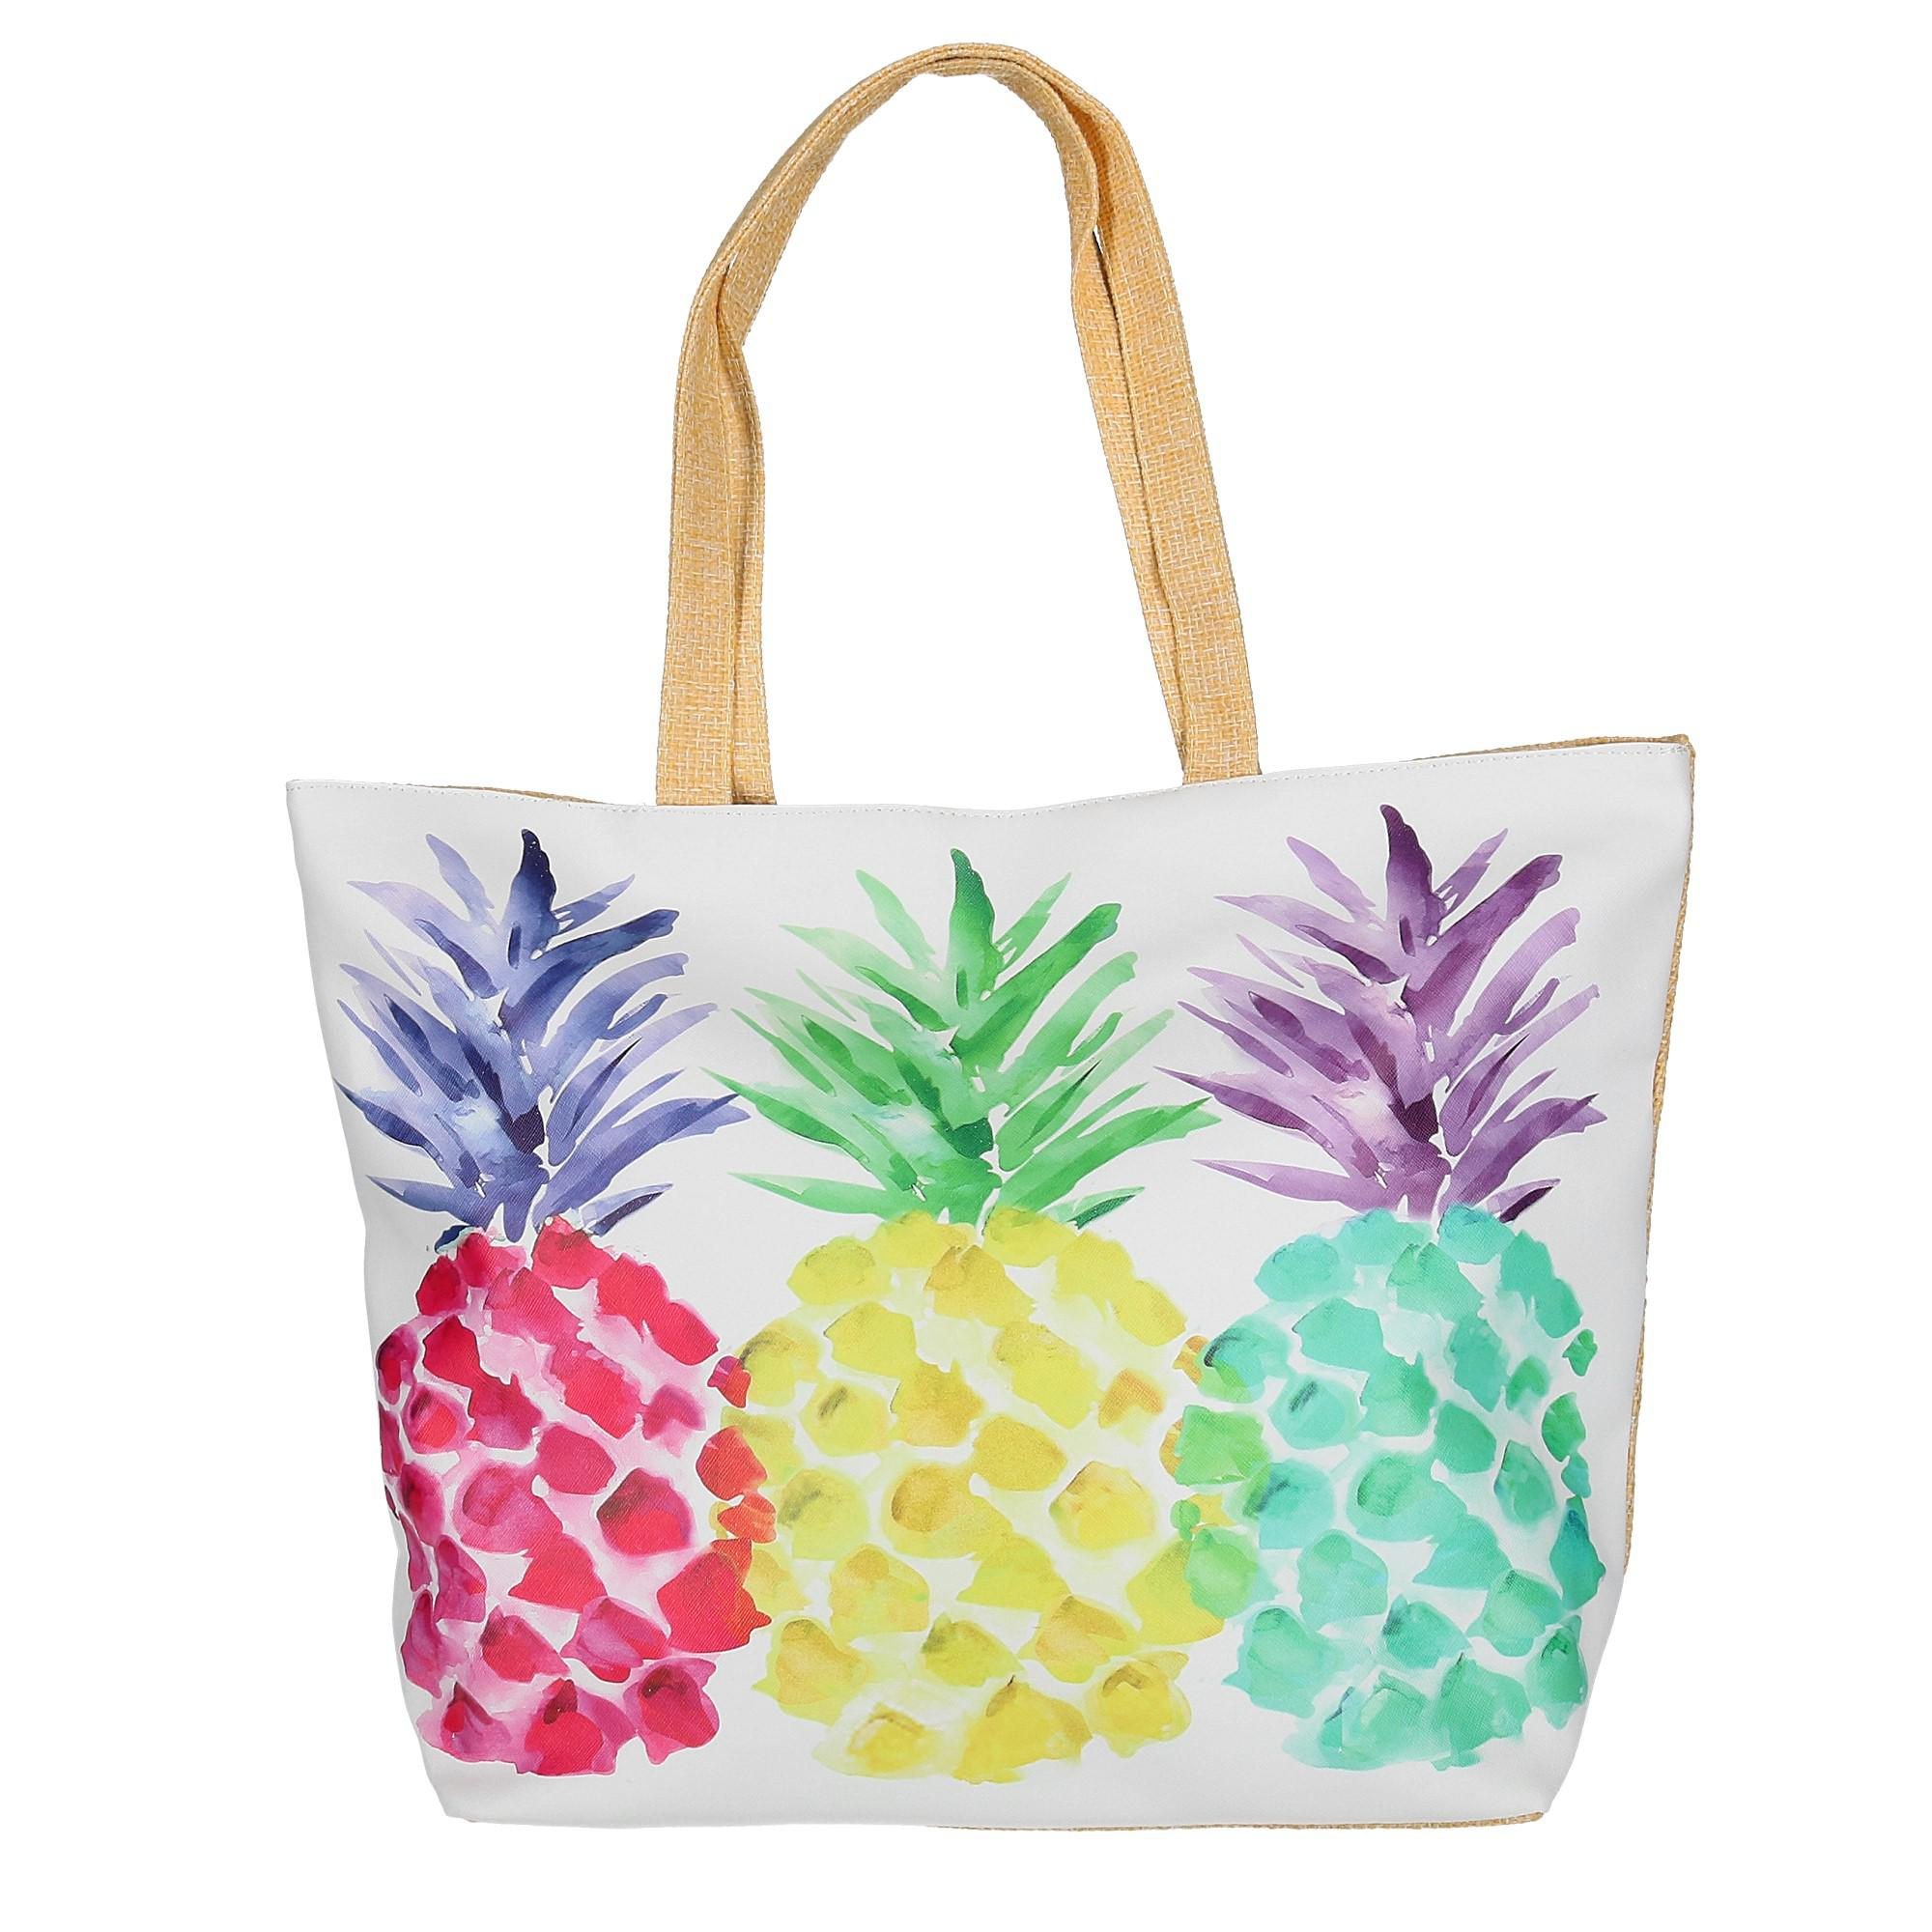 CTM Women s Pineapple Print Tote Bag 6f5bf9b4b2